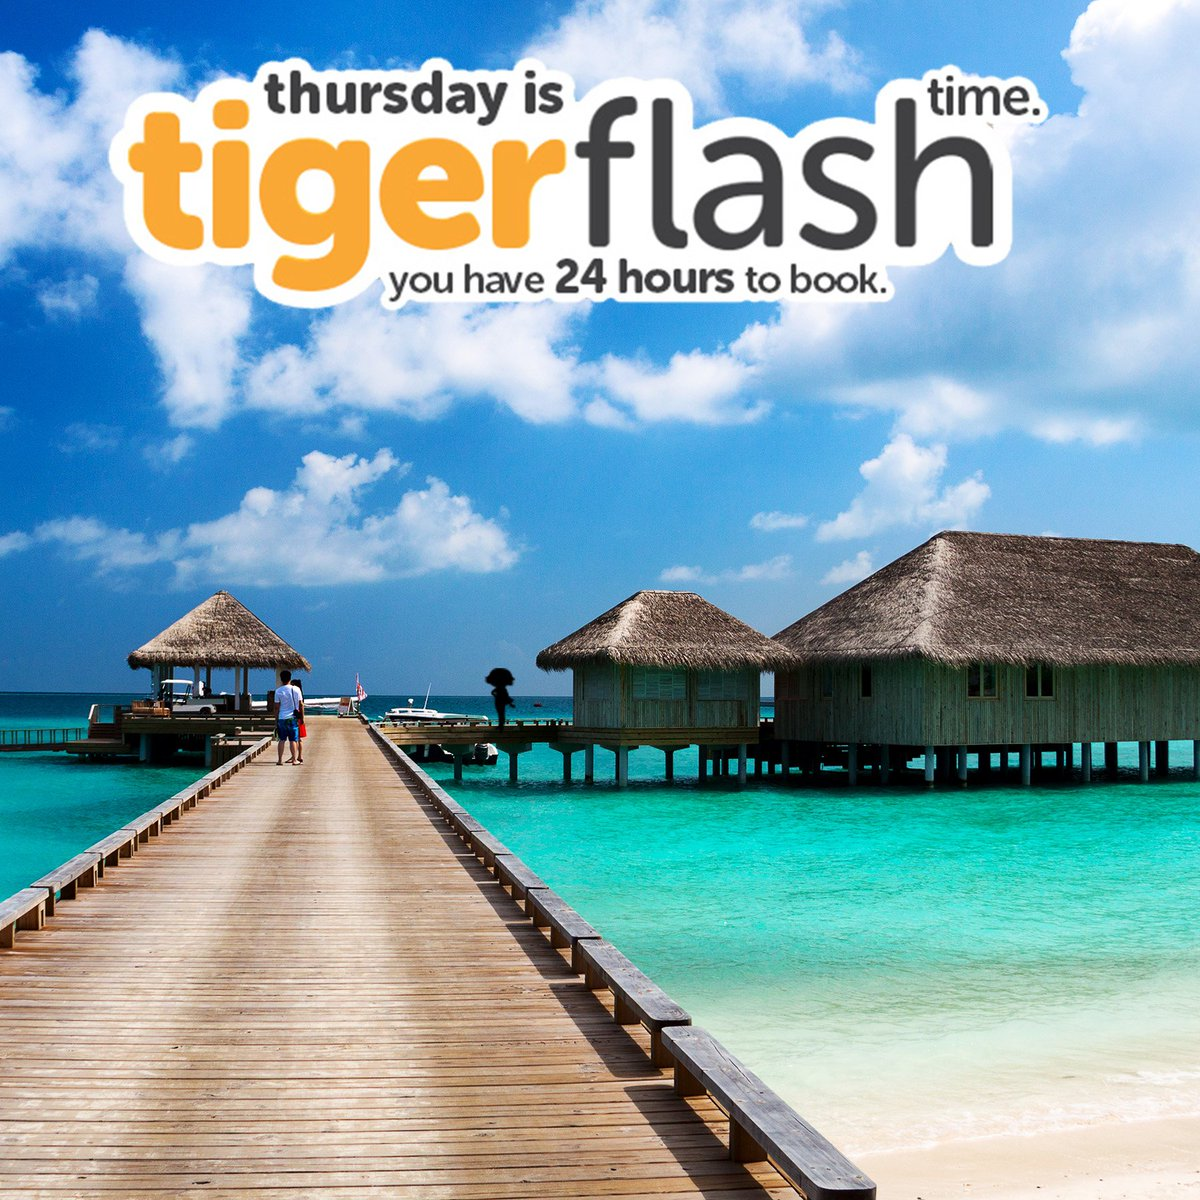 Travelling to paradise doesn't have to be a faraway dream. Fly with us to Maldives from $118* now! More #Tigerflash: https://t.co/YB6xoGOqRc https://t.co/WyUwMXwLdV